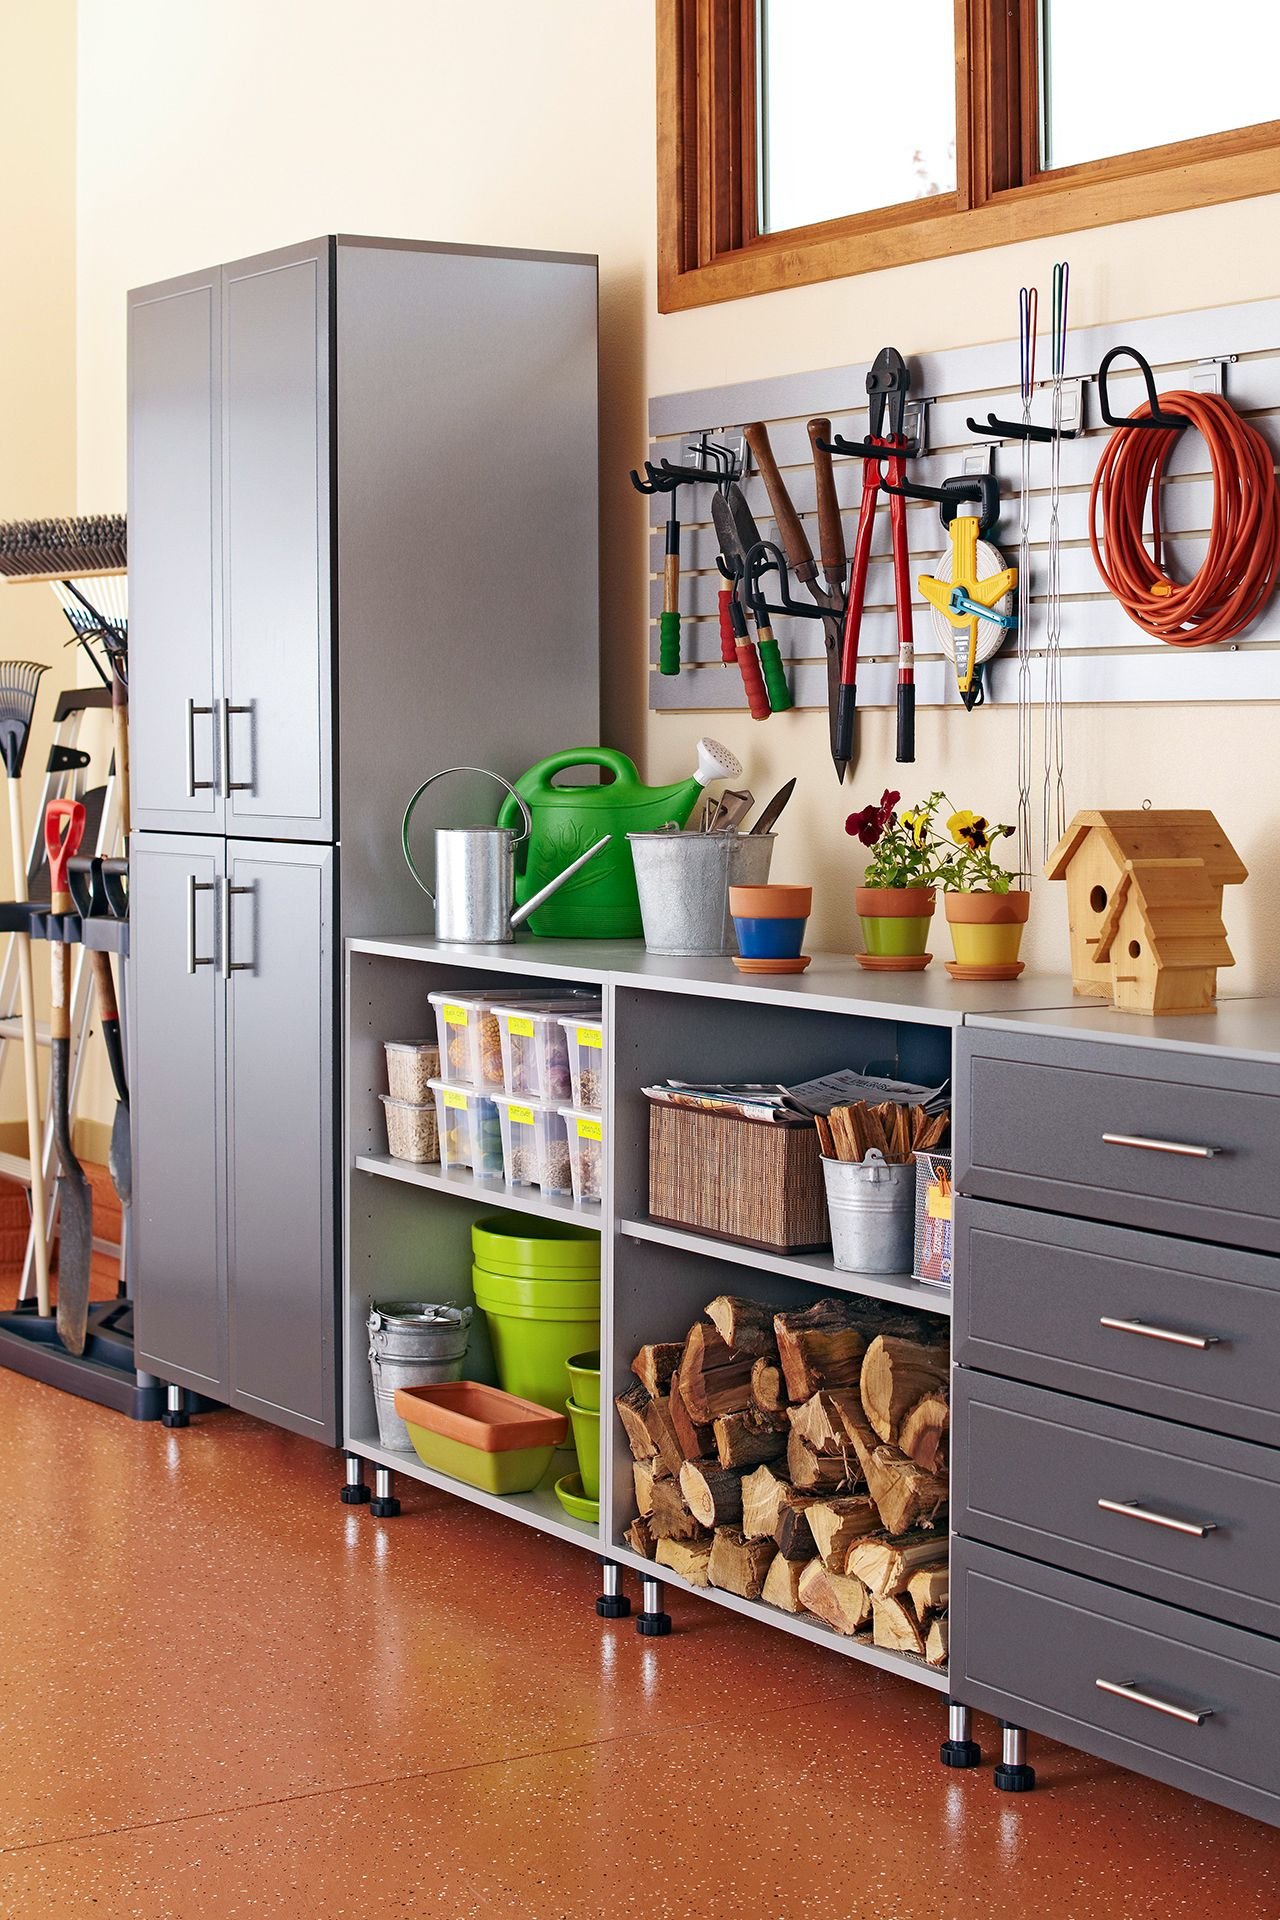 Know These Garden Basics And You Ll Have The Best Garden On The Block Garage Storage Organization Garage Organization Tips Garage Organization